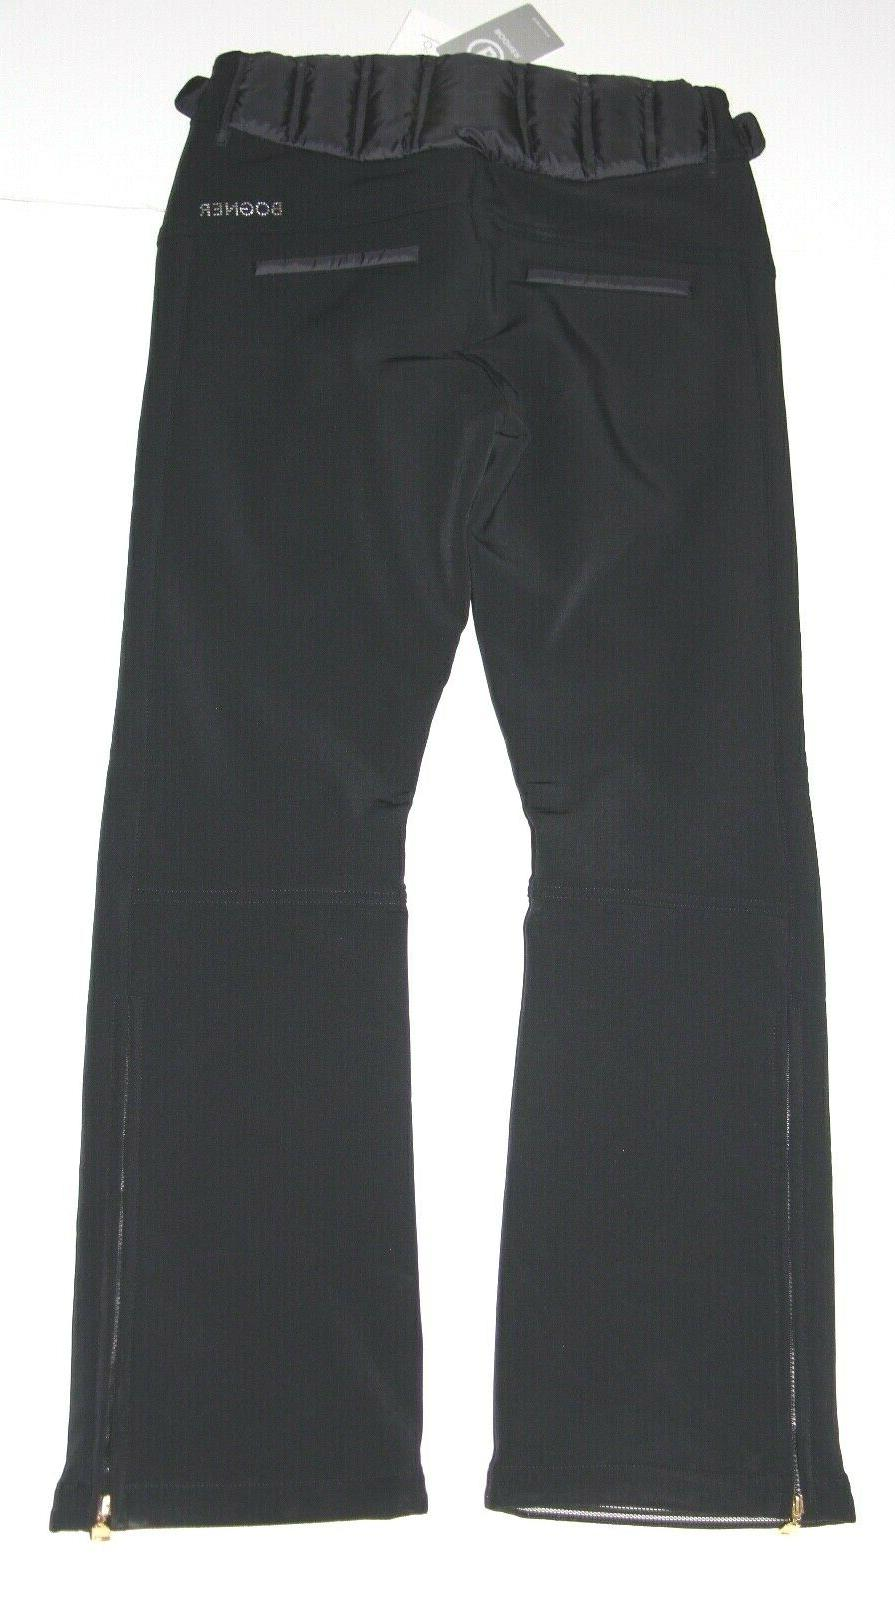 Bogner Hailey Ski Pant EU 6 Small - Black NEW